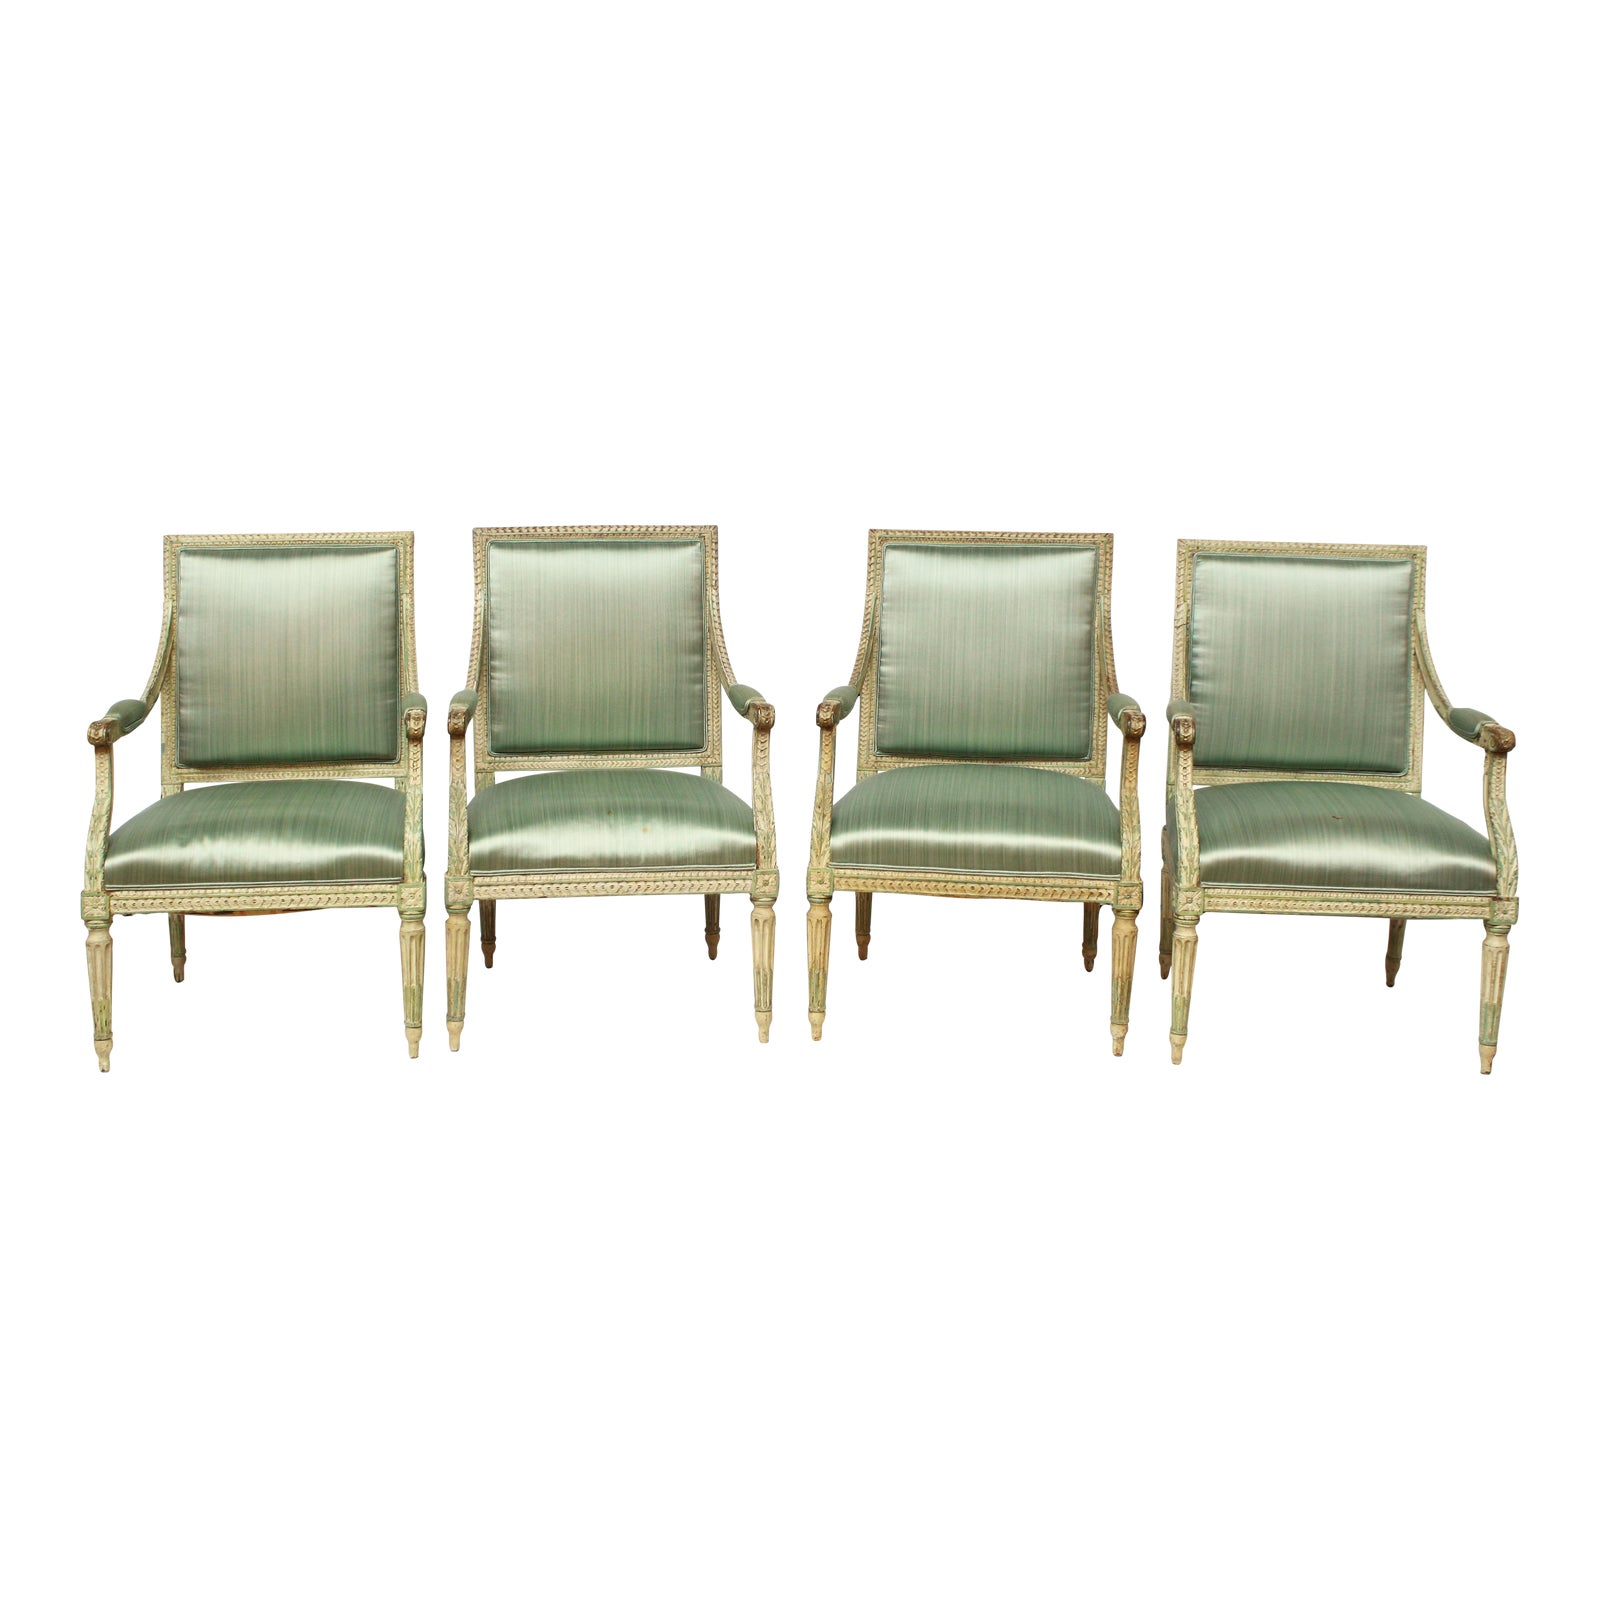 2 Oor Fauteuils.Louis Xvi Fauteuils Set Of Four Or Two Pairs